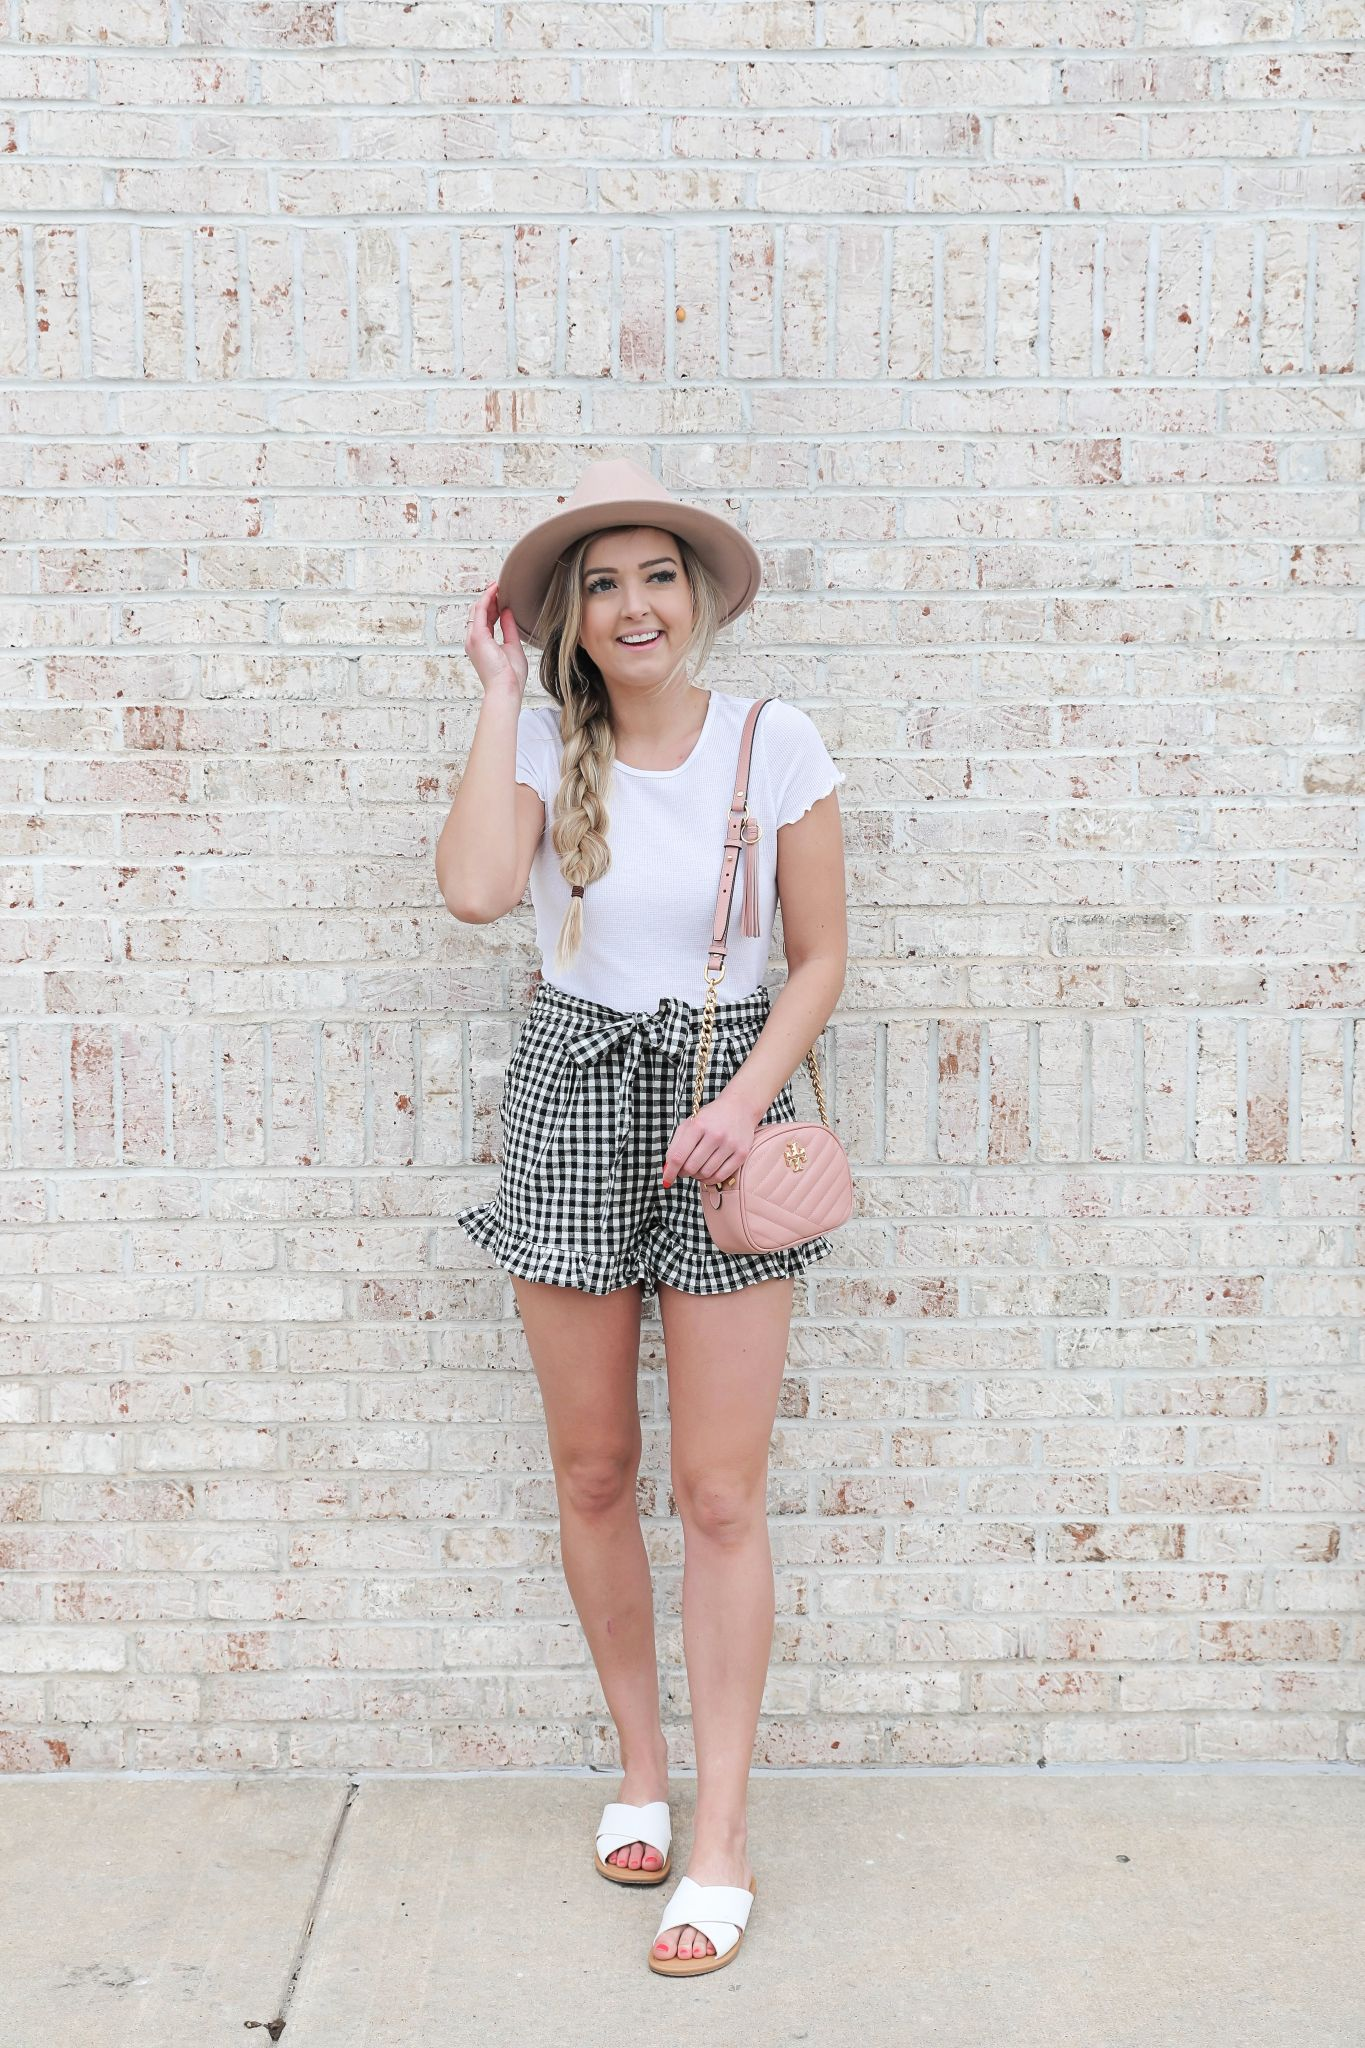 Summer shorts roundup! I am loving paper bag shorts right now, and these gingham ones are my favorite! I paired it with an adorable felt hat! Details on fashoin blog daily dose of charm by lauren lindmark